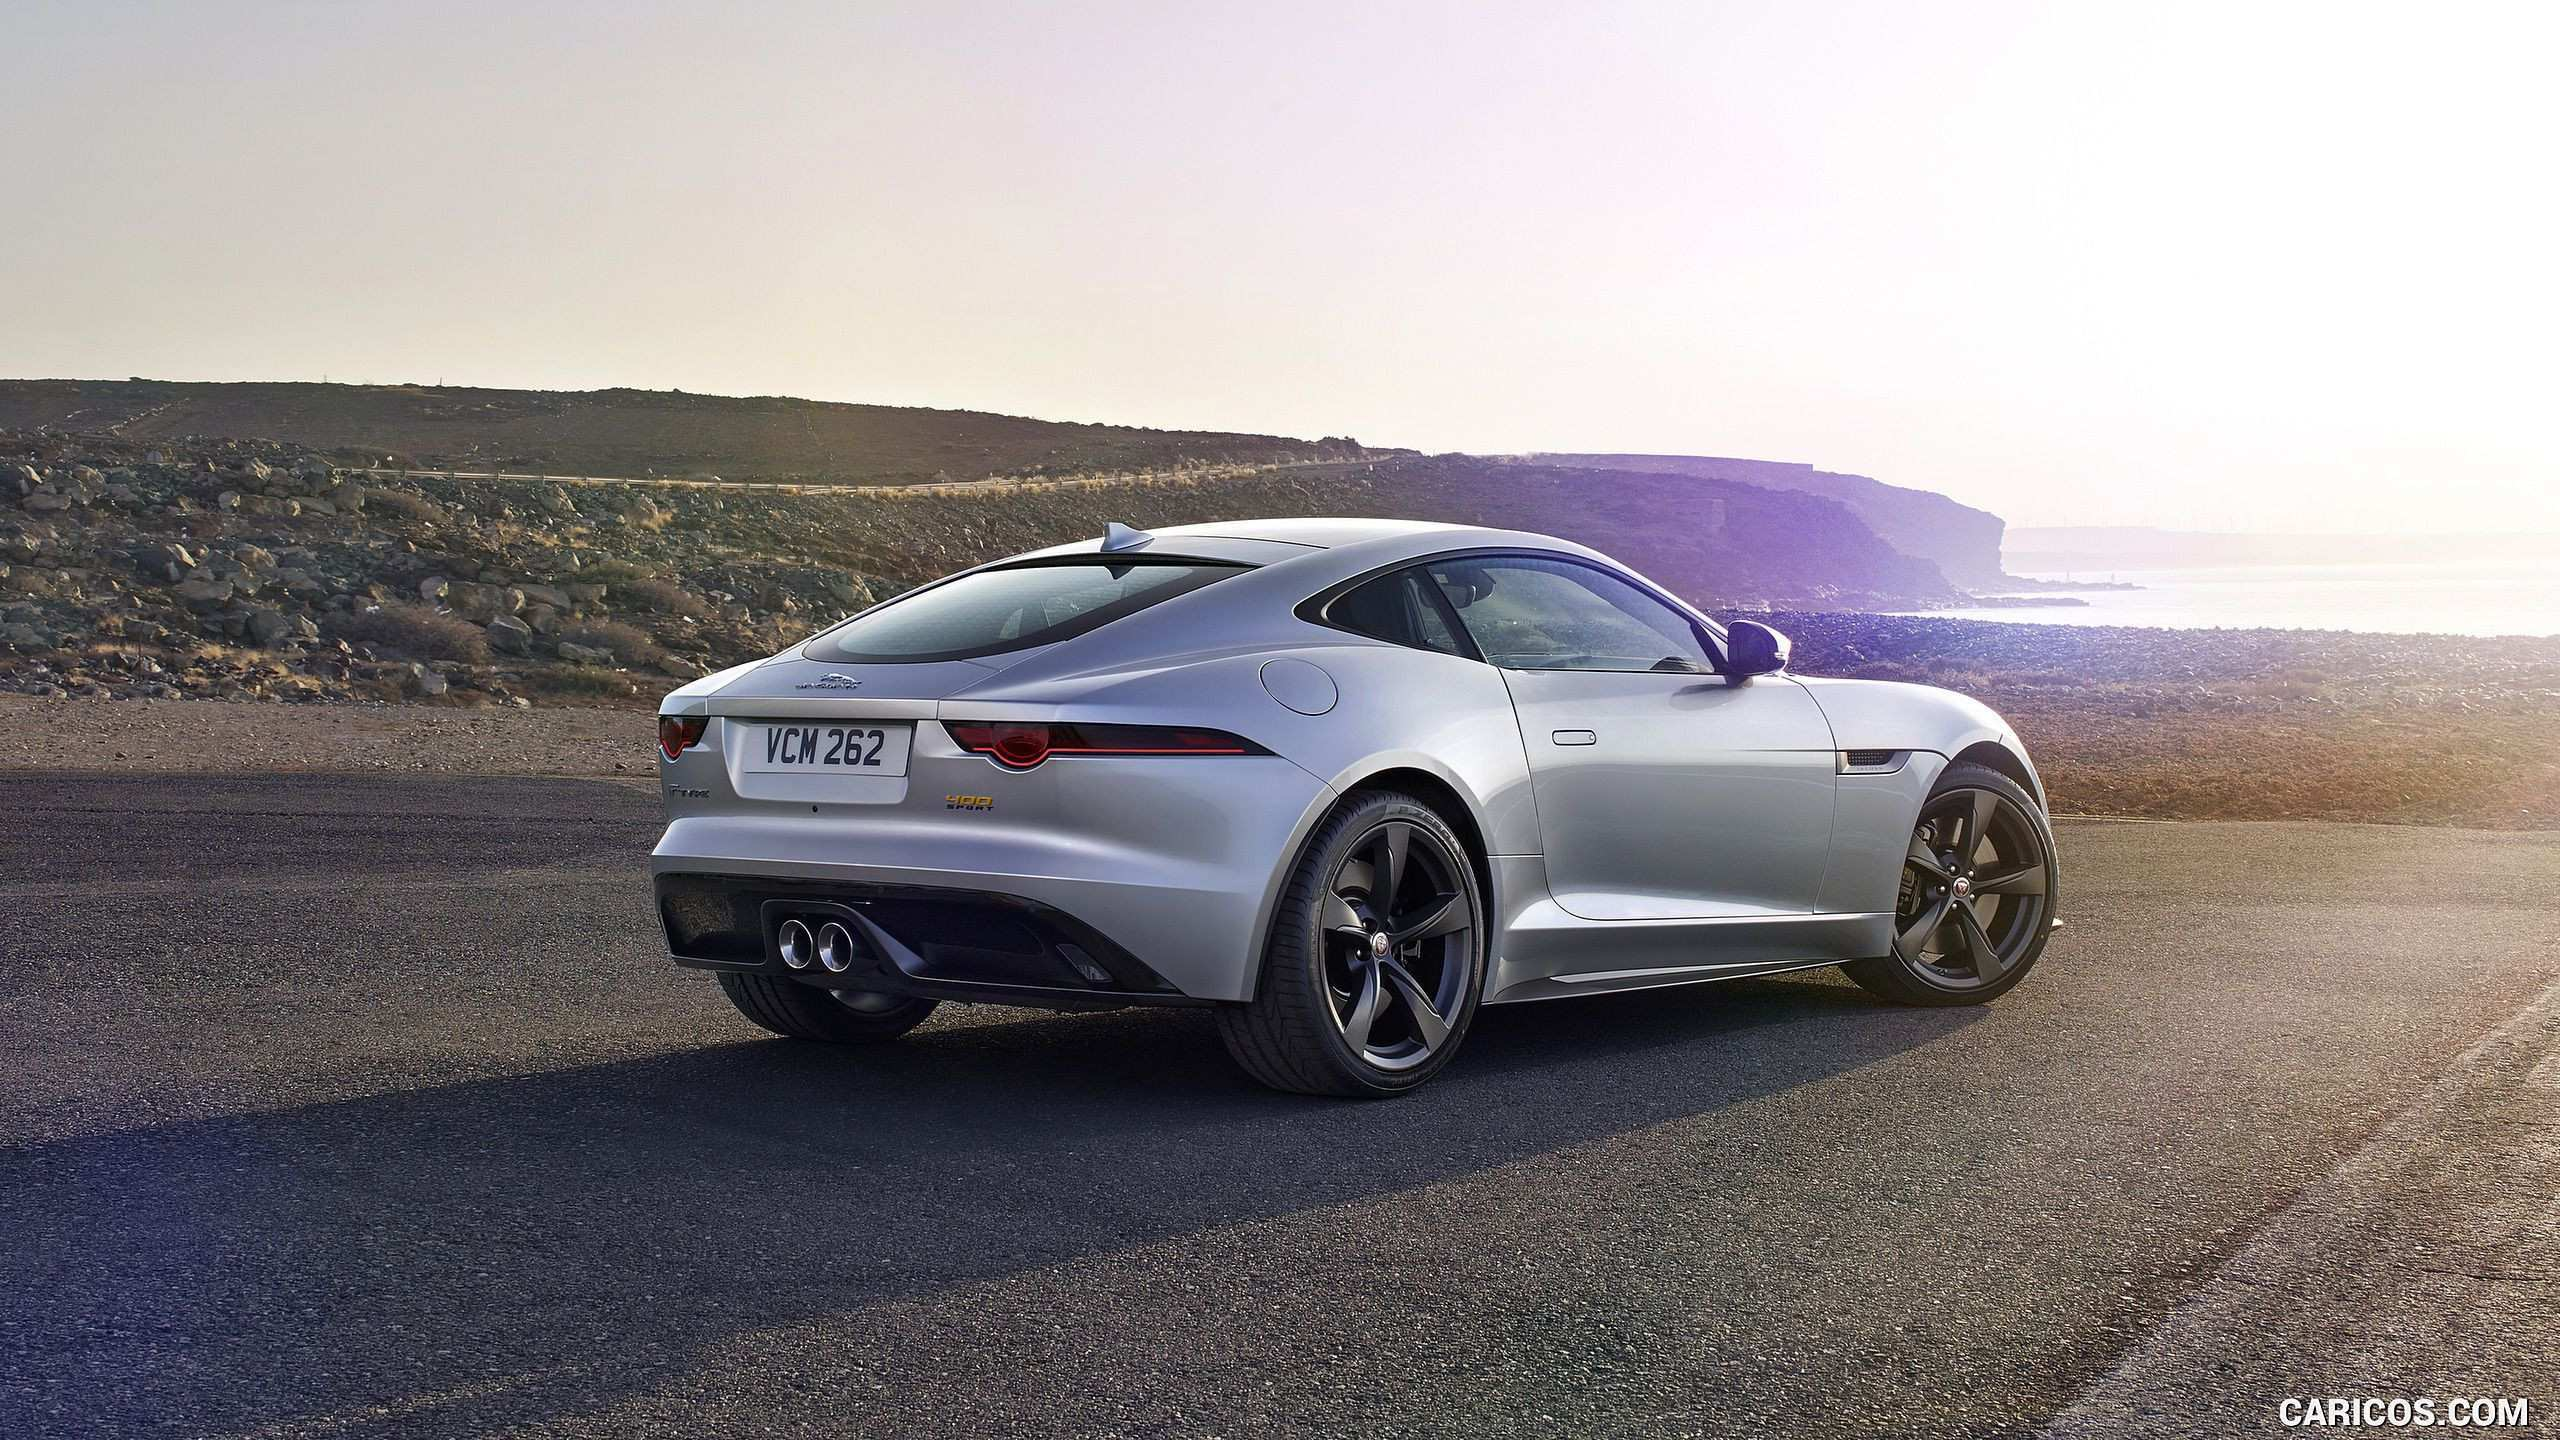 95 Concept of 2020 Jaguar F Type Coupe Rumors with 2020 Jaguar F Type Coupe